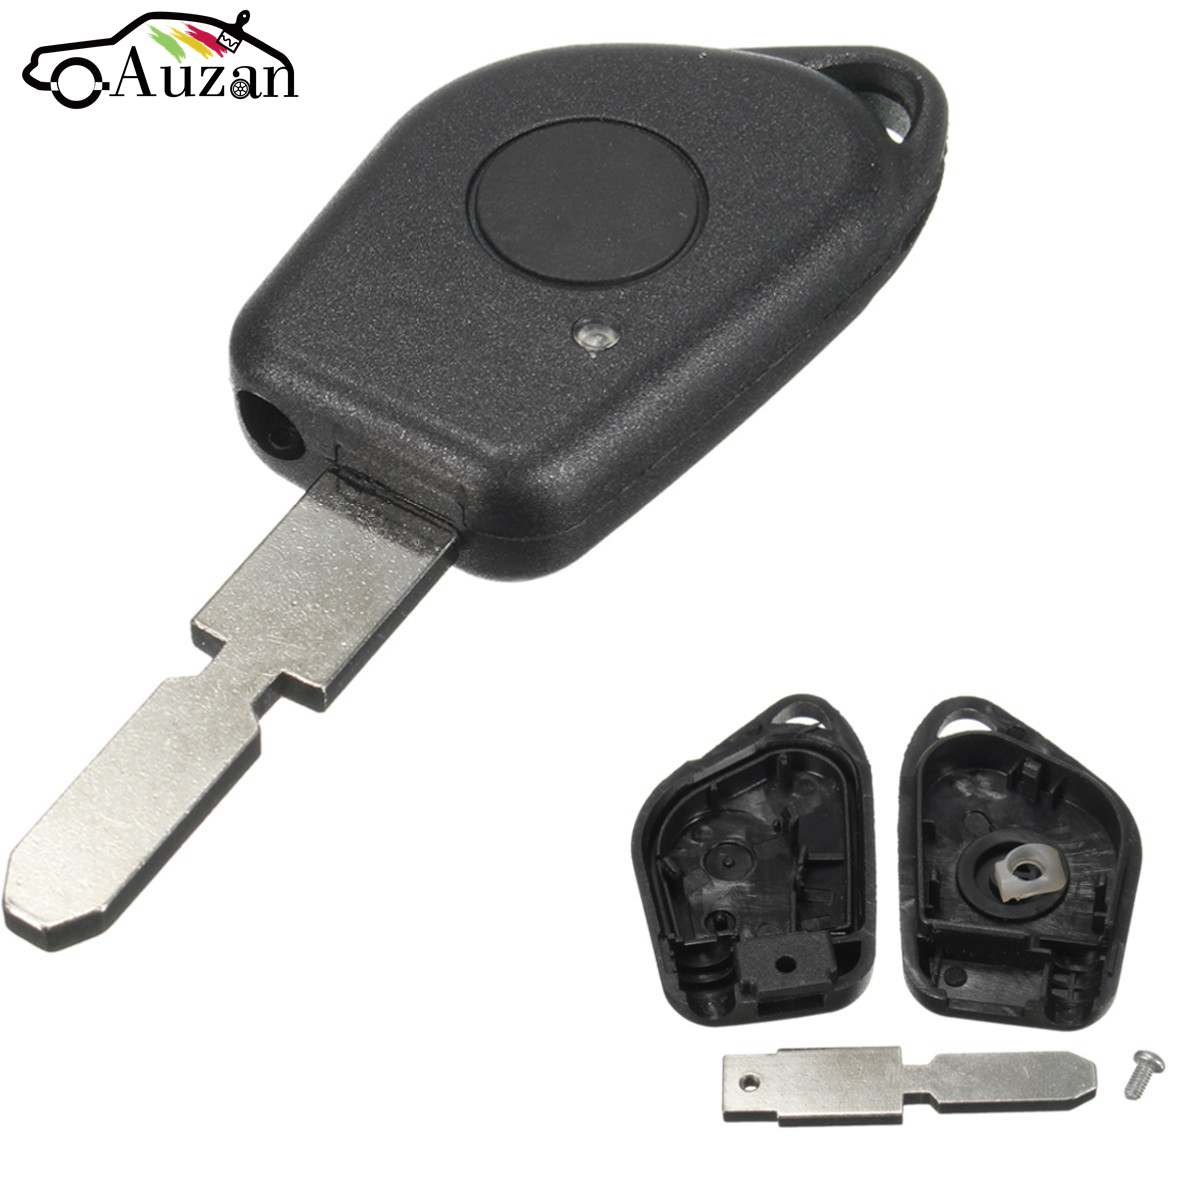 1 Button Remote Key Fob Case Shell with Blank Blade Fits For PEUGEOT 406 406